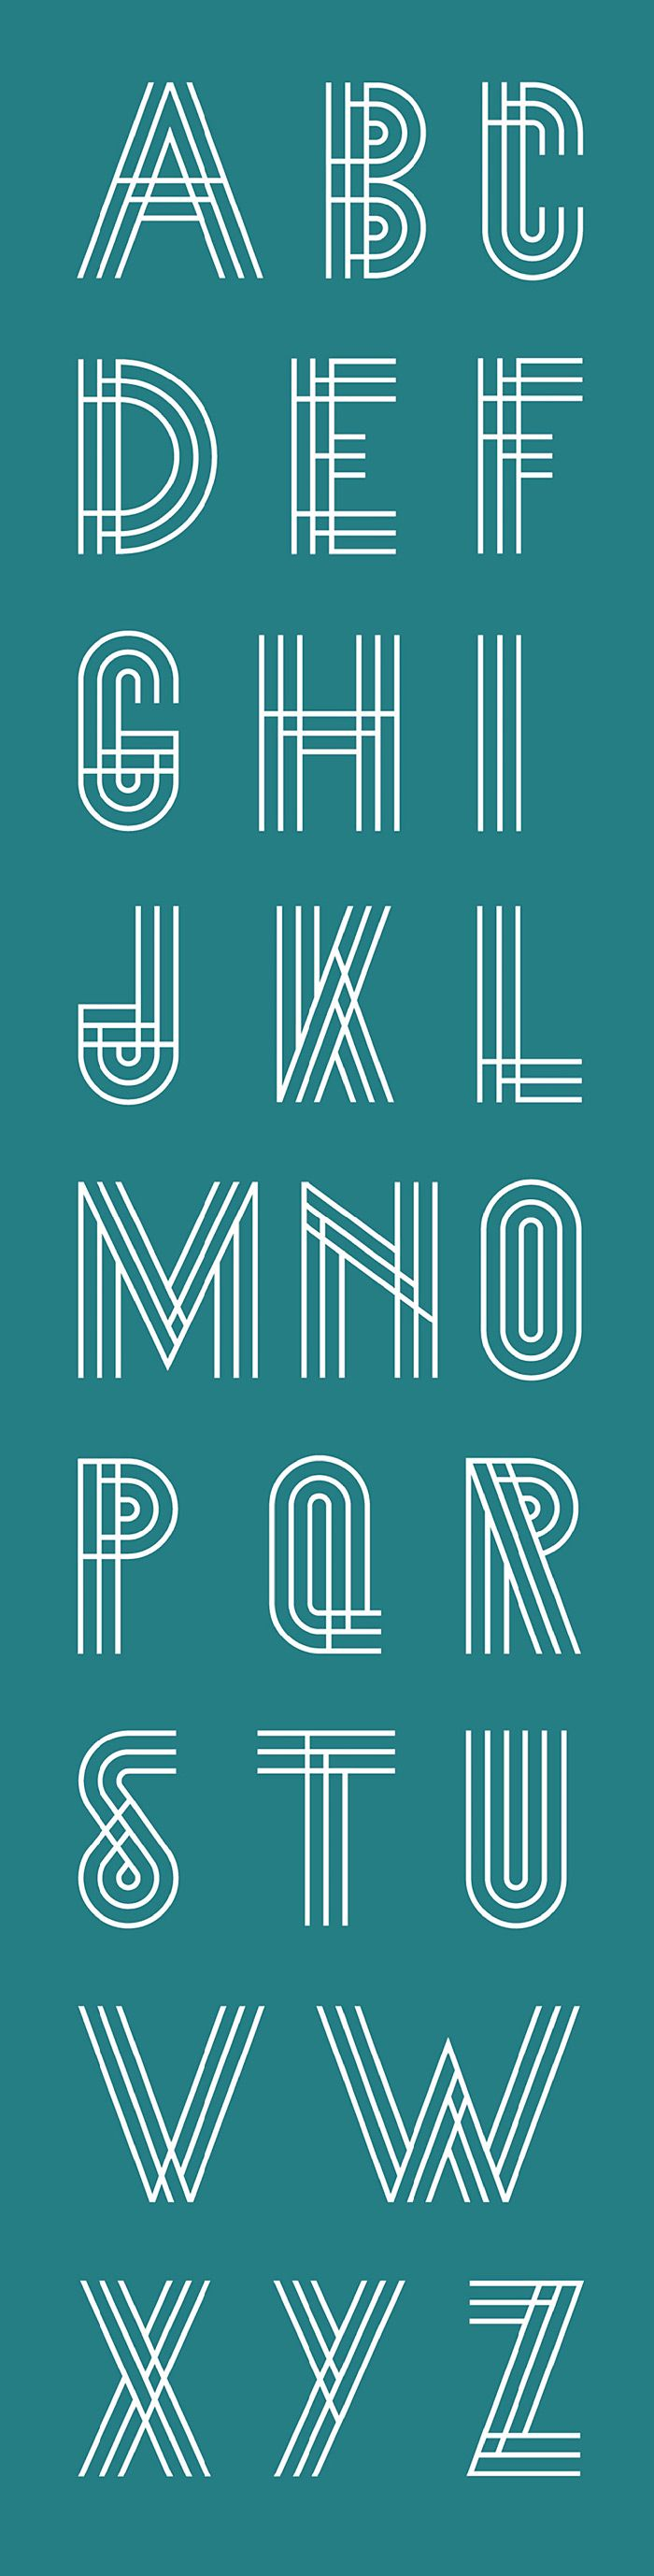 typeface -- architectural, modern, innovative, reliant on human recognition of letterforms